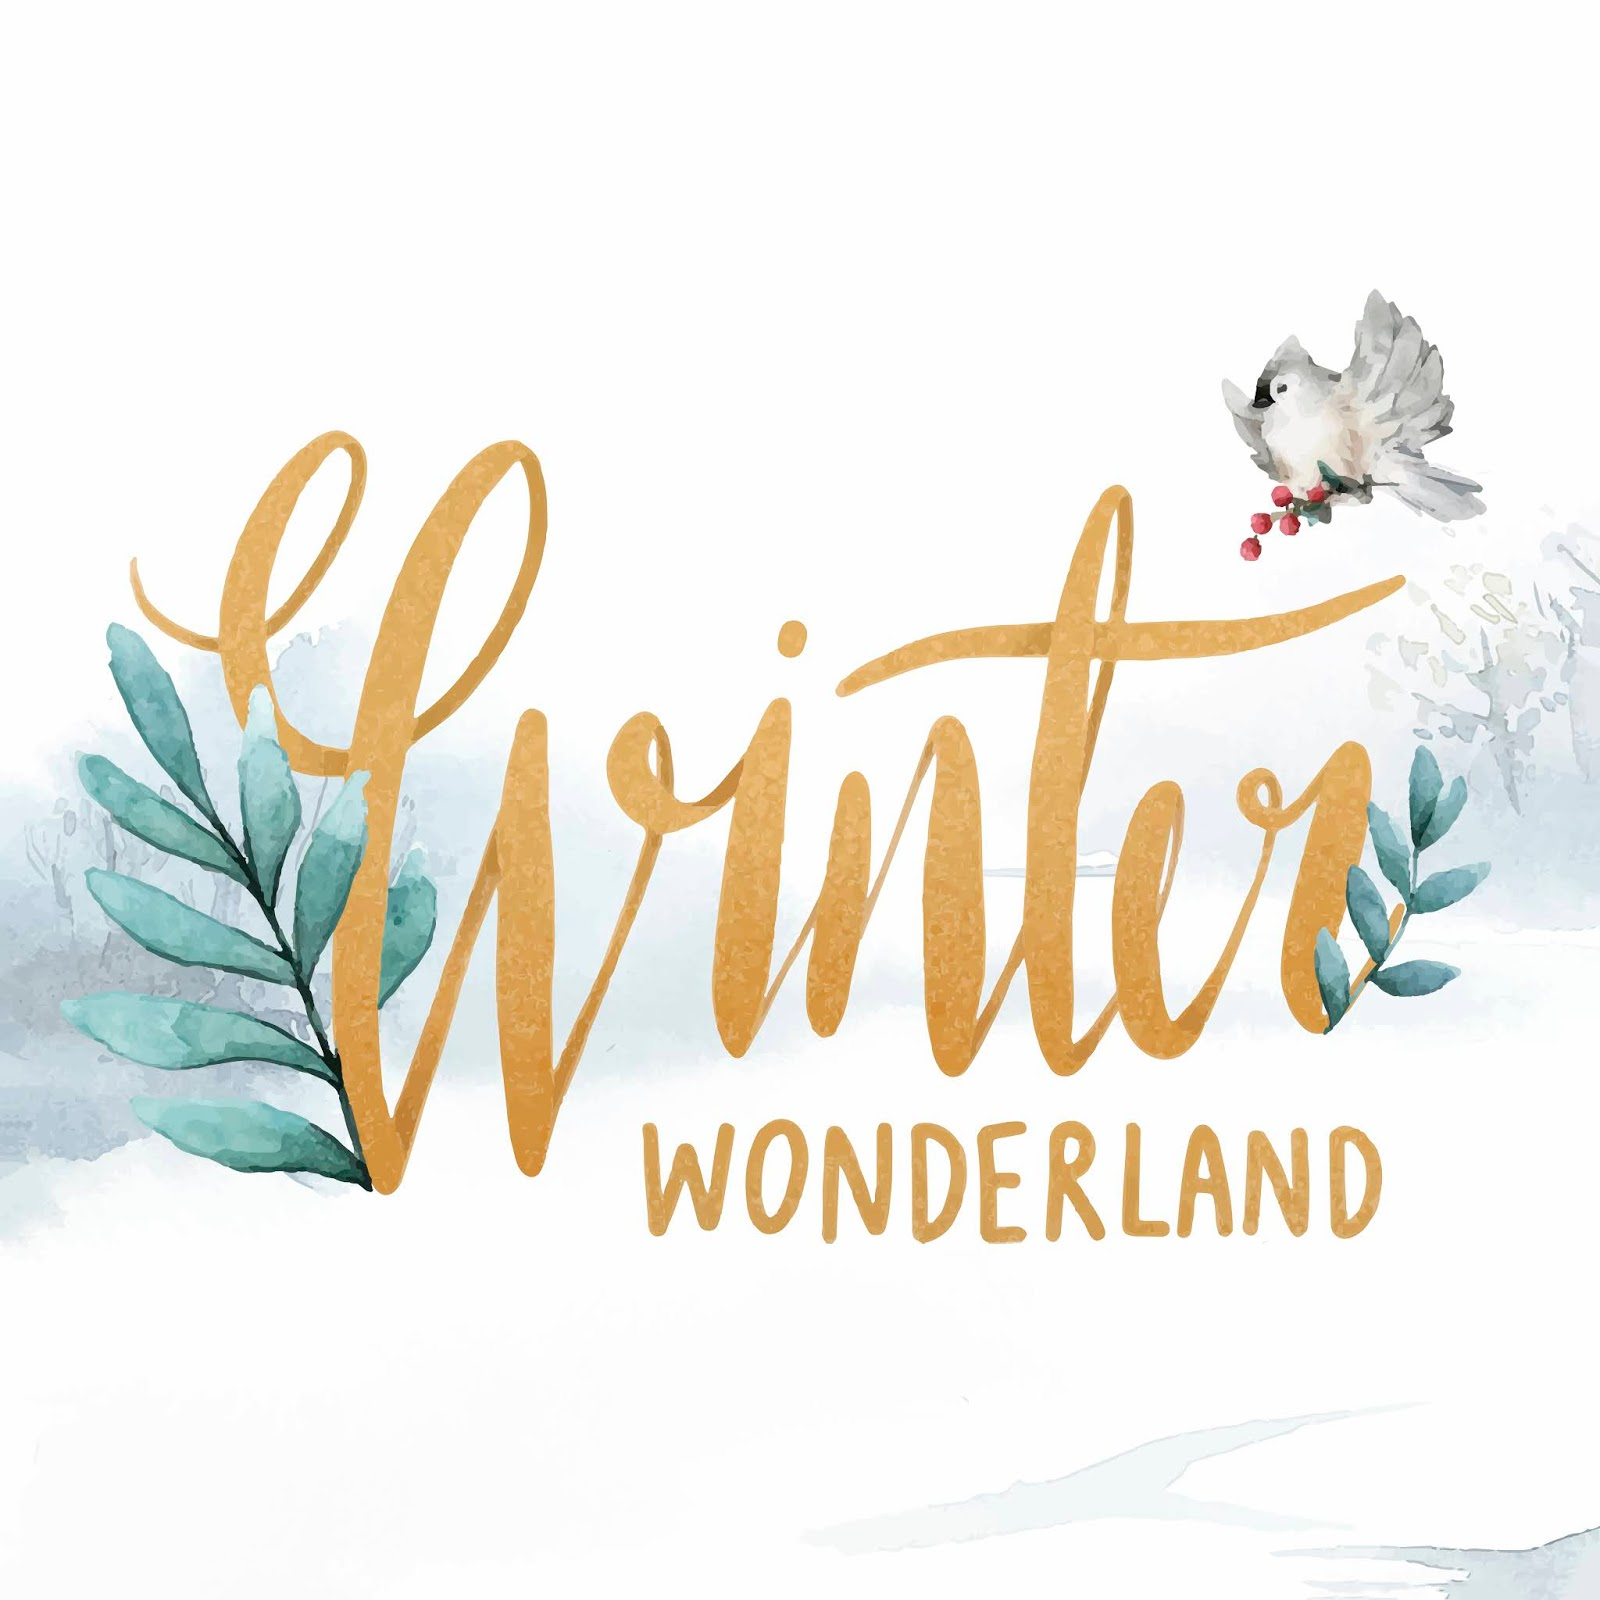 Winter Wonderland Watercolor Typography Vector (1) Free Download Vector CDR, AI, EPS and PNG Formats